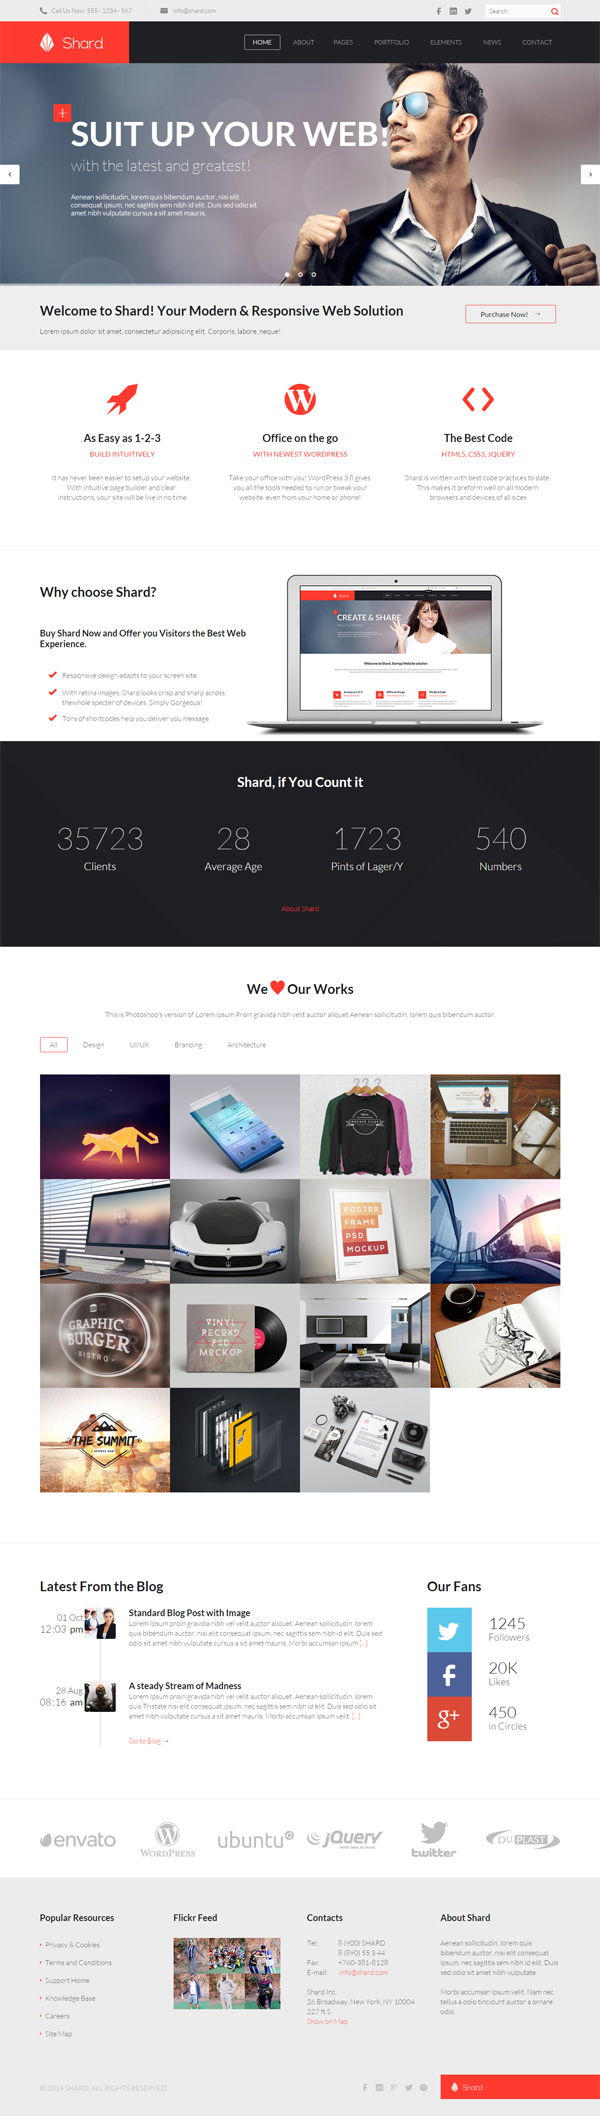 Shard - Multipurpose Business HTML5 Template